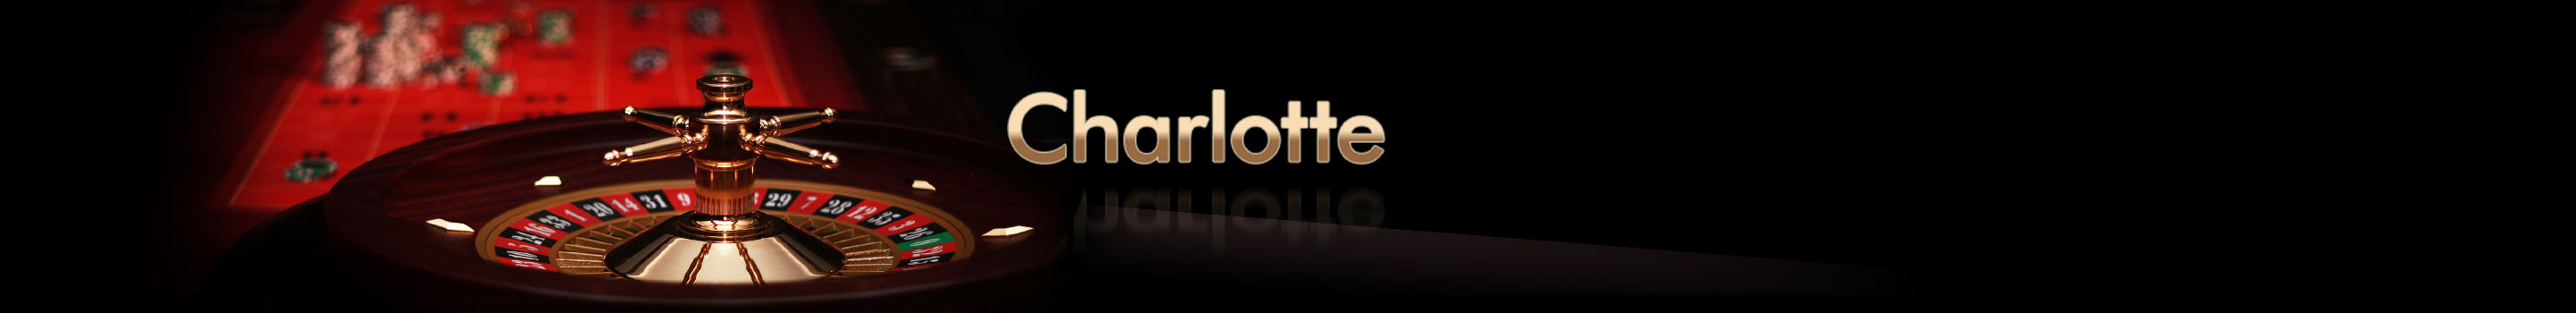 Das Charlotte Roulette-System